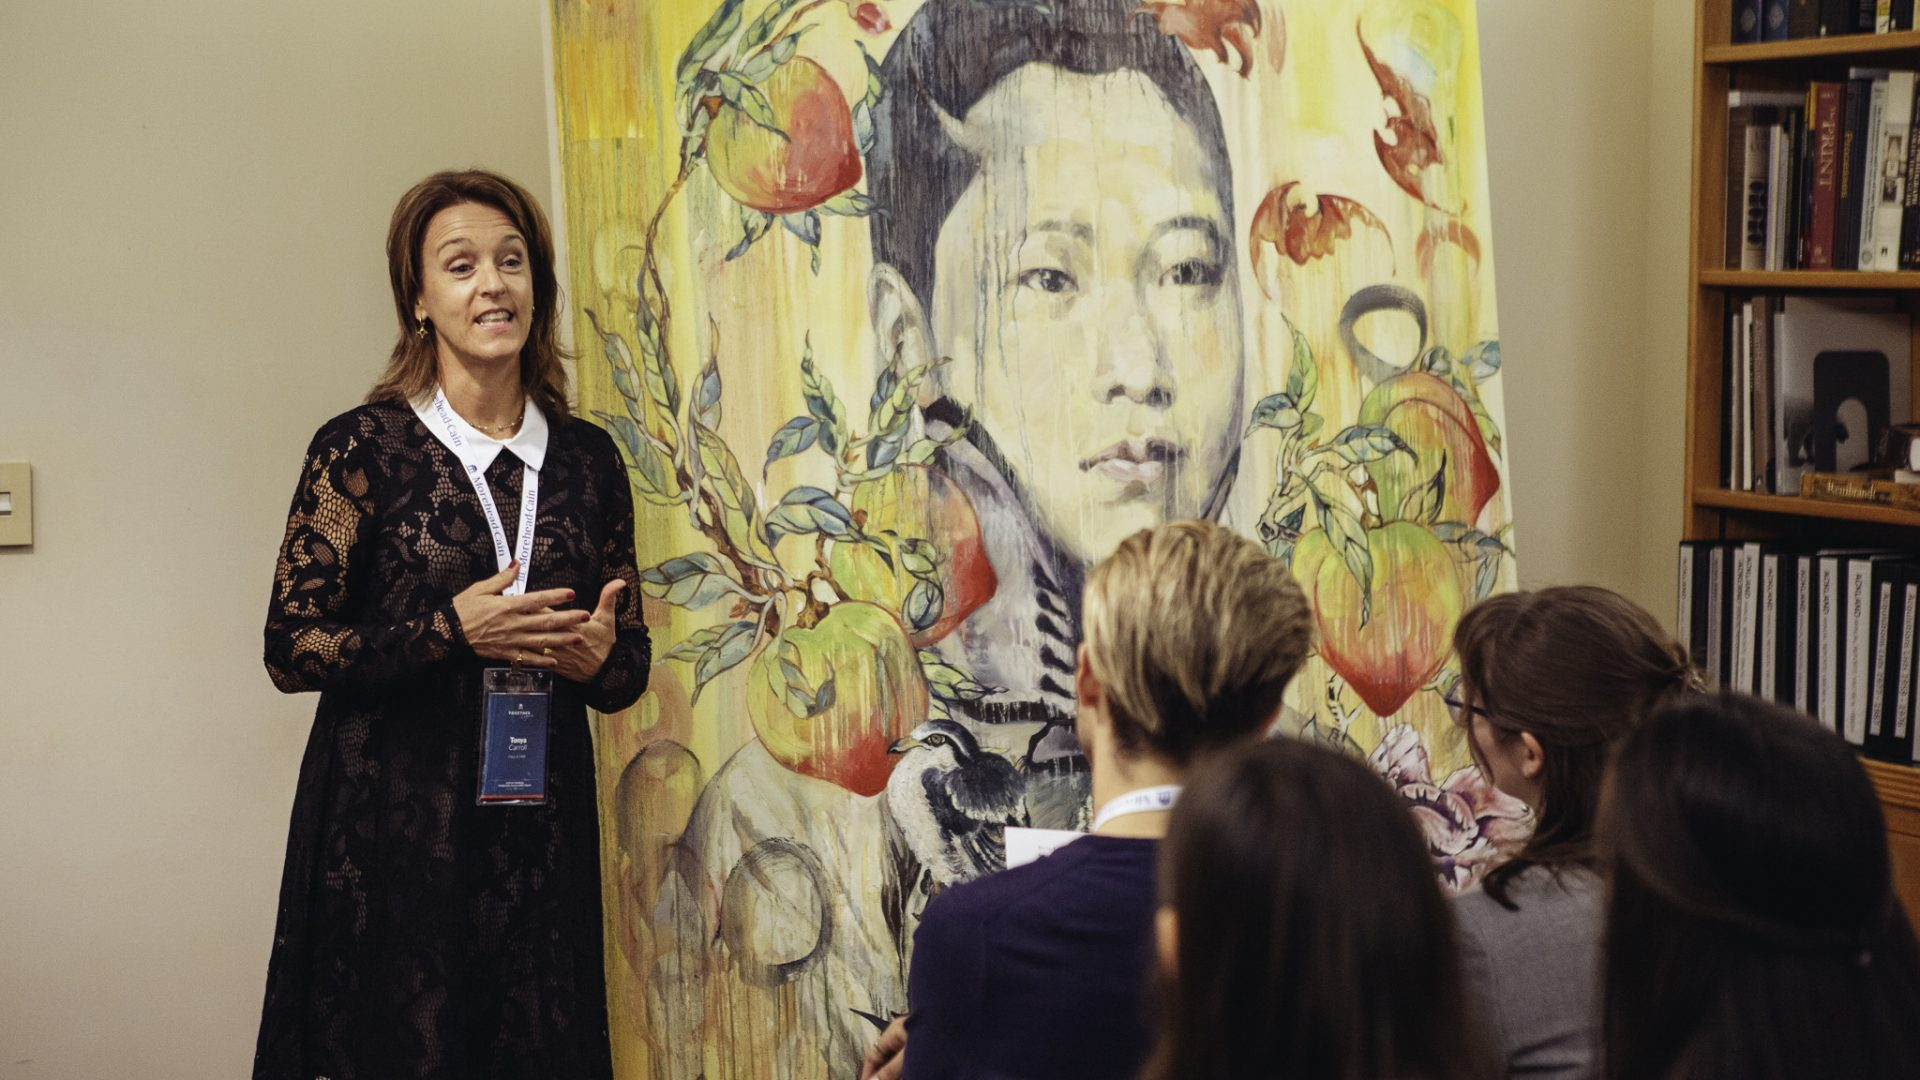 Tonya Turner Carroll '89 speaks with Morehead-Cains at the 2018 Alumni Forum in front of a Hung Liu painting at The Ackland Art Museum in Chapel Hill.